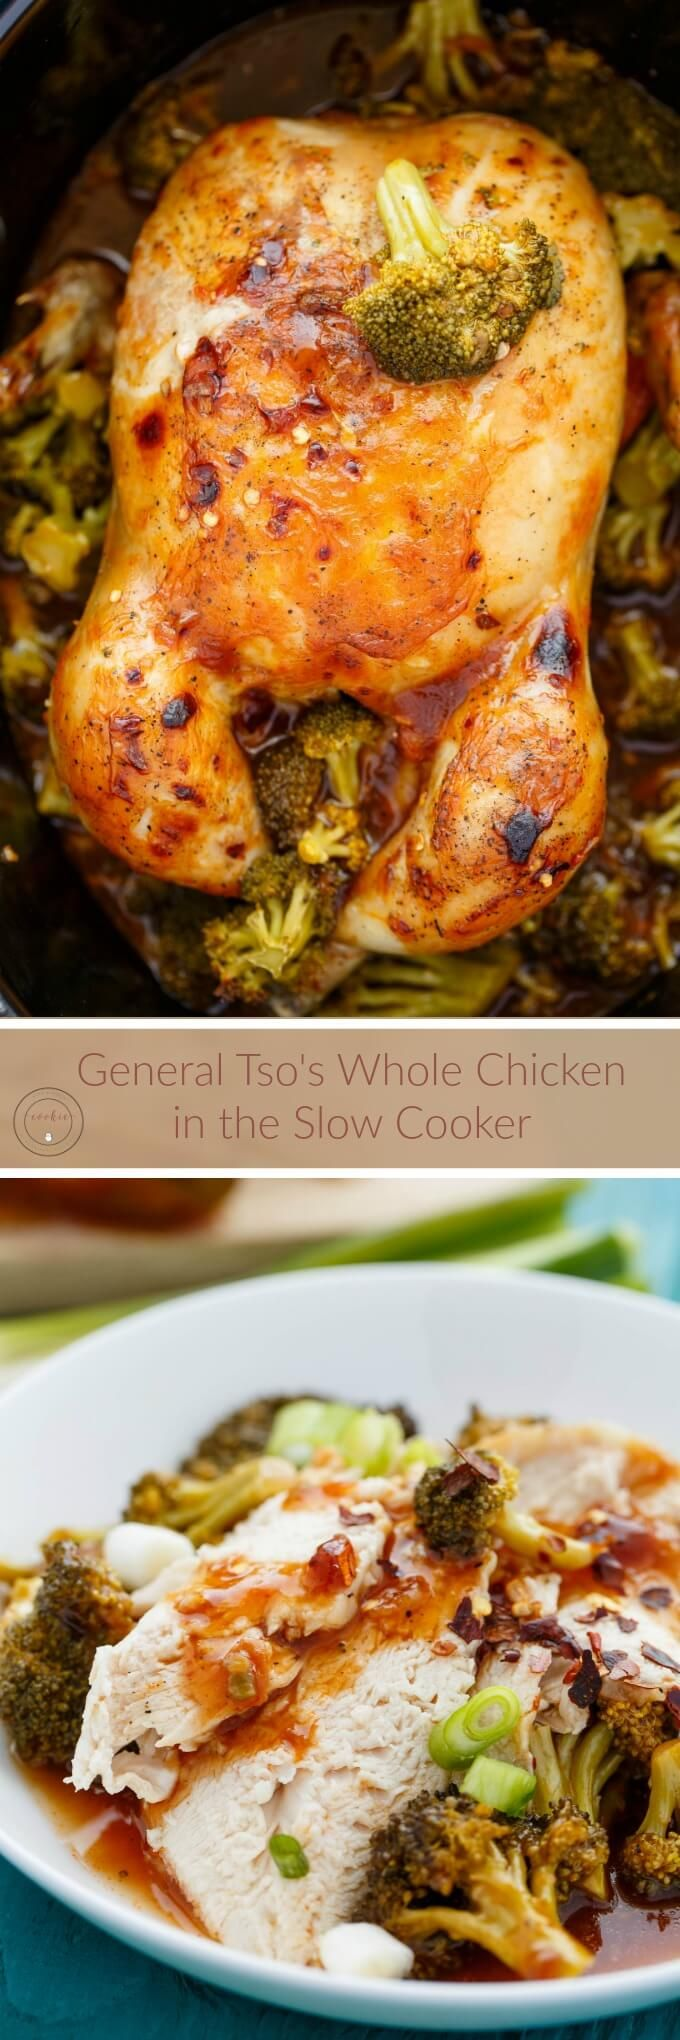 General Tso's Whole Chicken in the Slow Cooker   http://thecookiewriter.com   #chicken #slowcooker #glutenfree